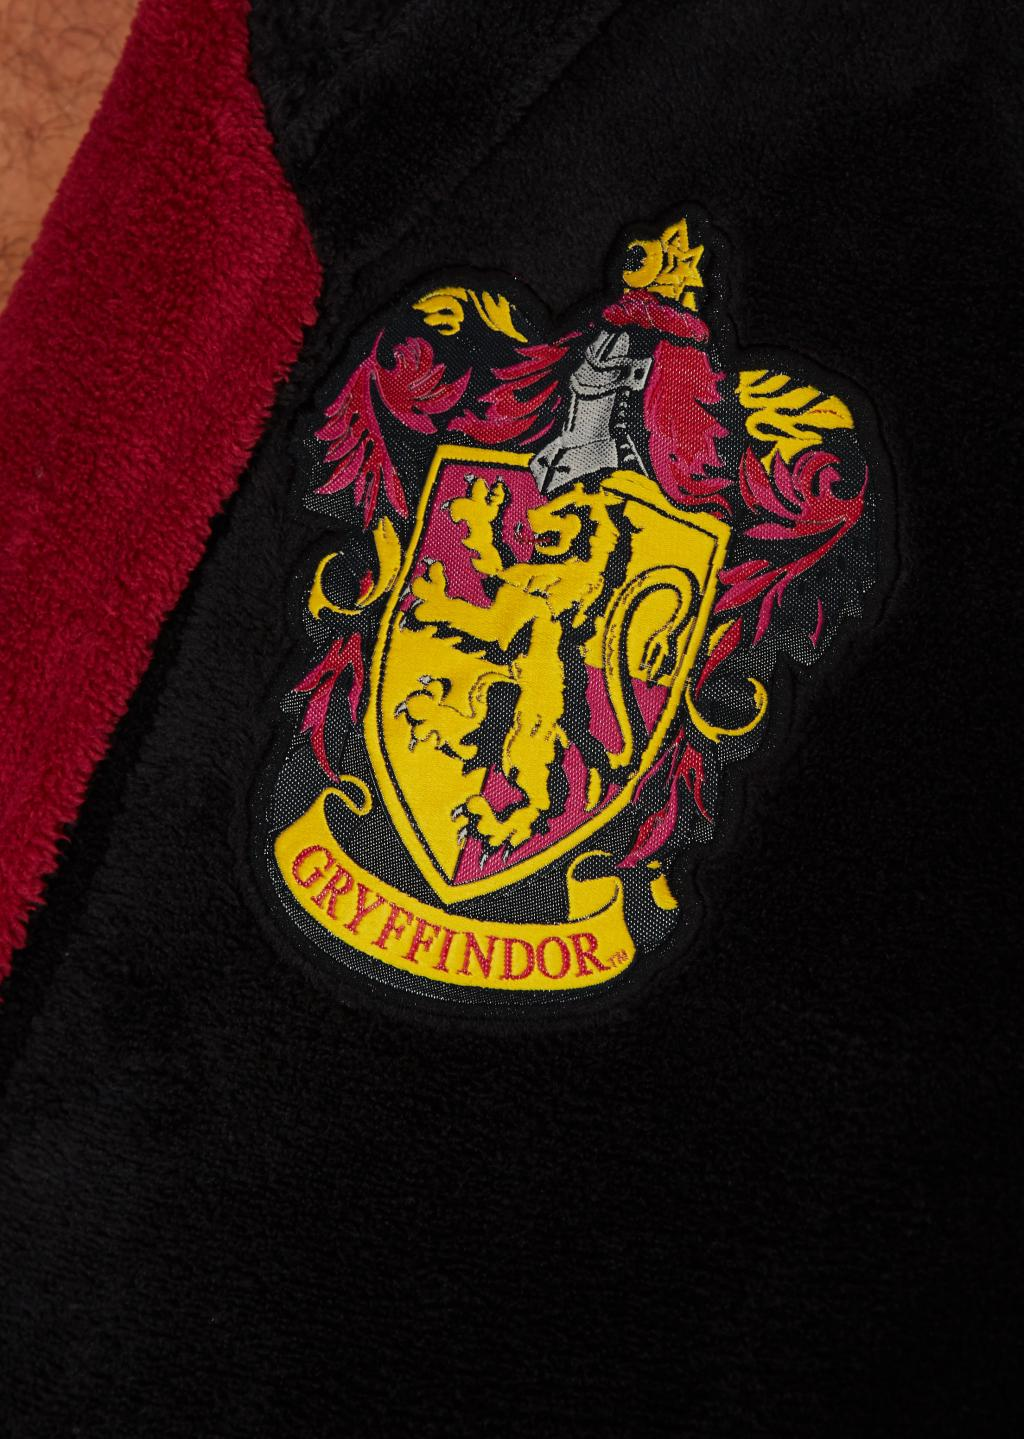 HARRY POTTER - Peignoir Homme - Gryffindor - Adulte - Taille Unique_3